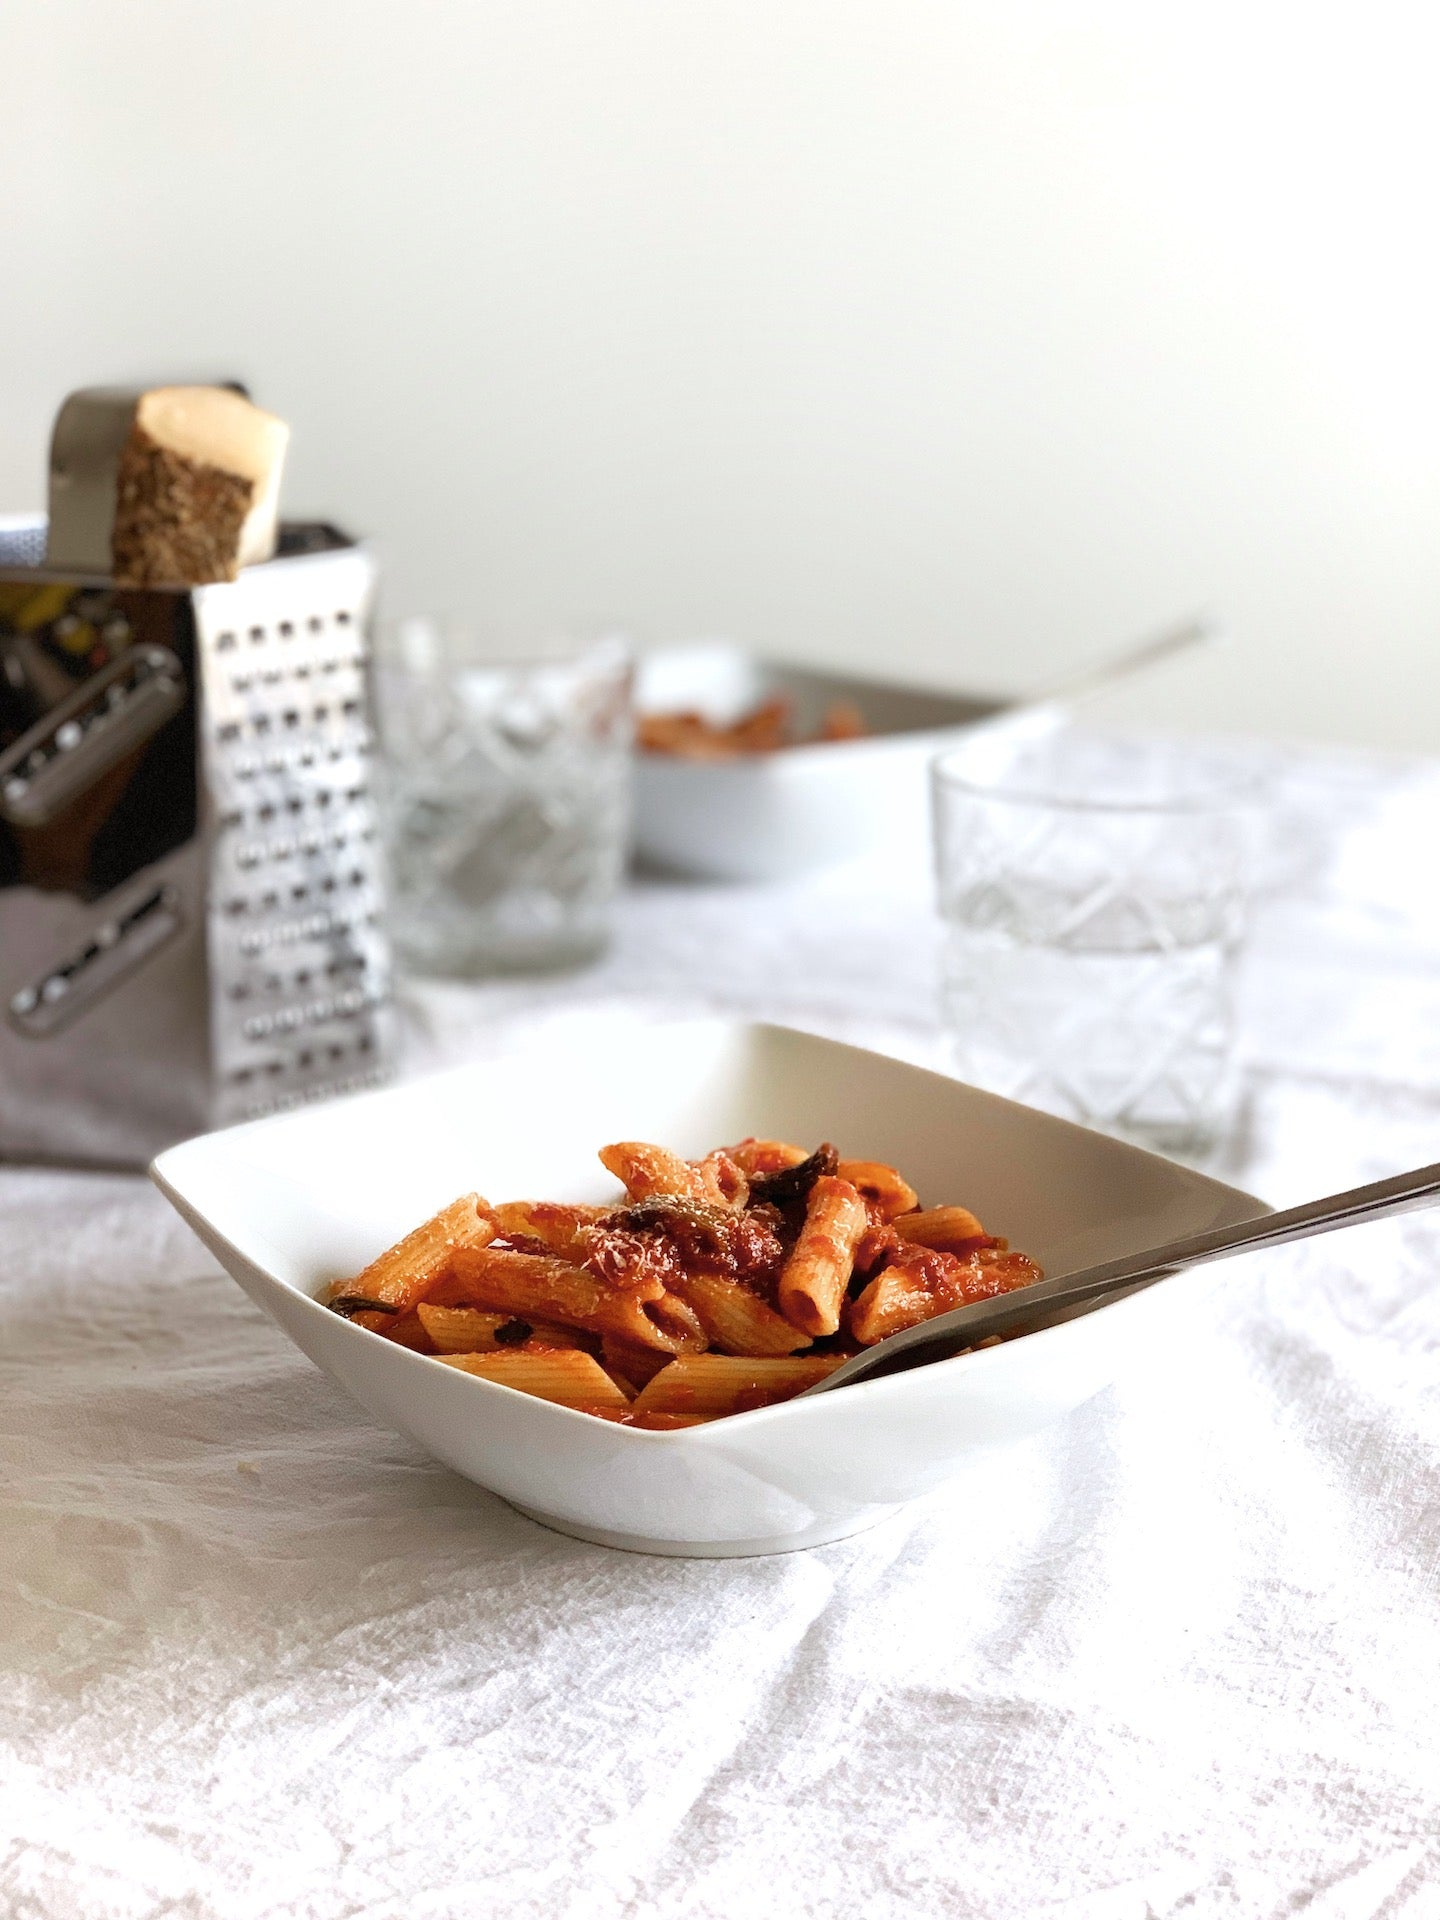 A quick pasta, with our new favourite sauce